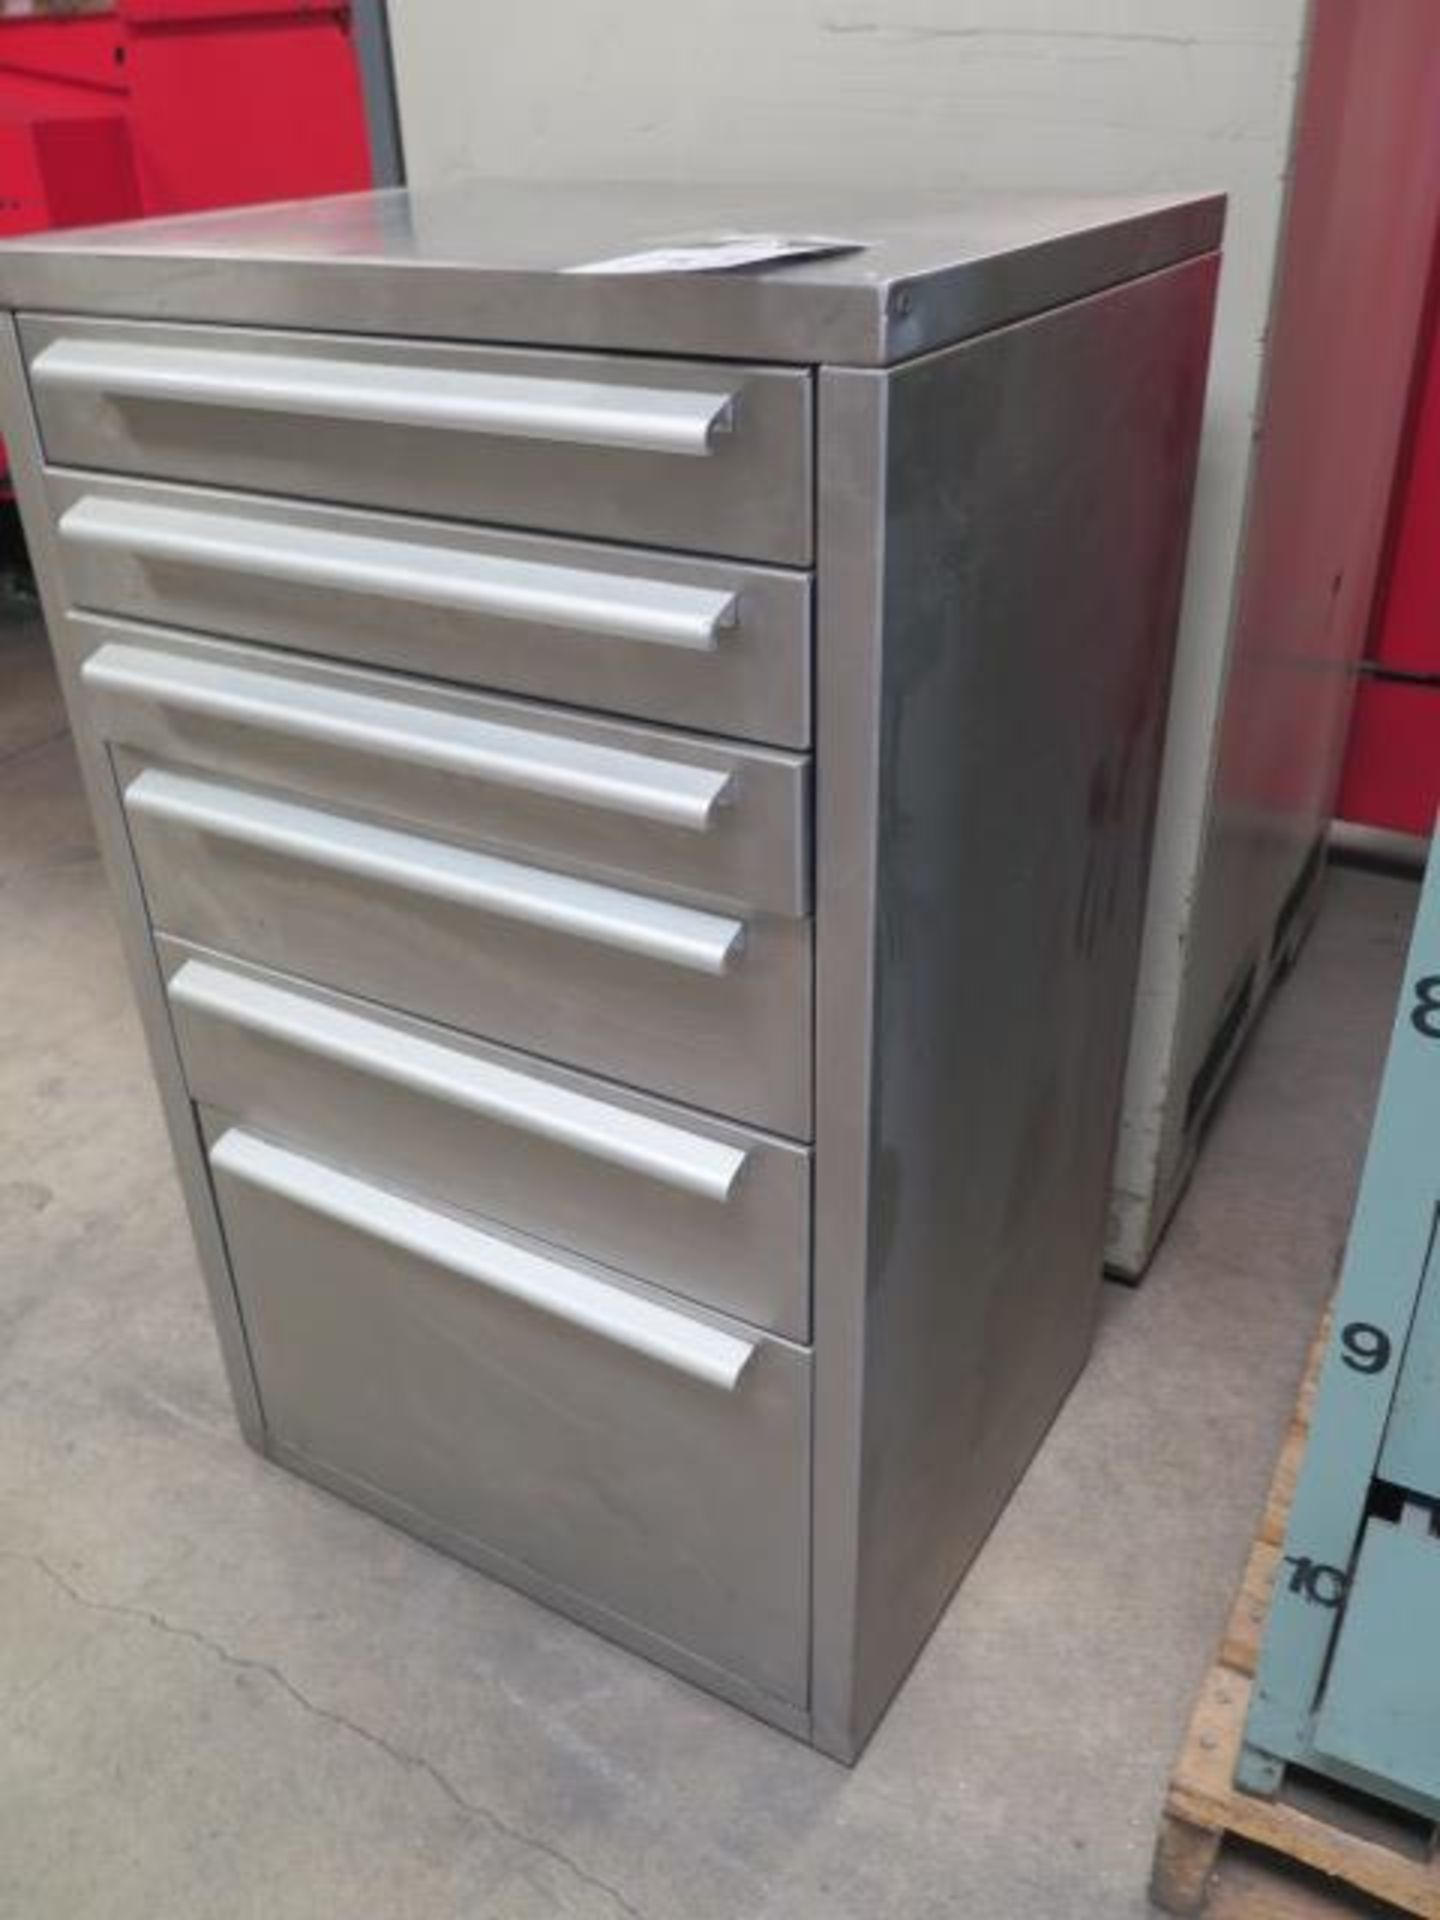 Stainless Steel 5-Drawer Tooling Cabinet (SOLD AS-IS - NO WARRANTY) - Image 2 of 5